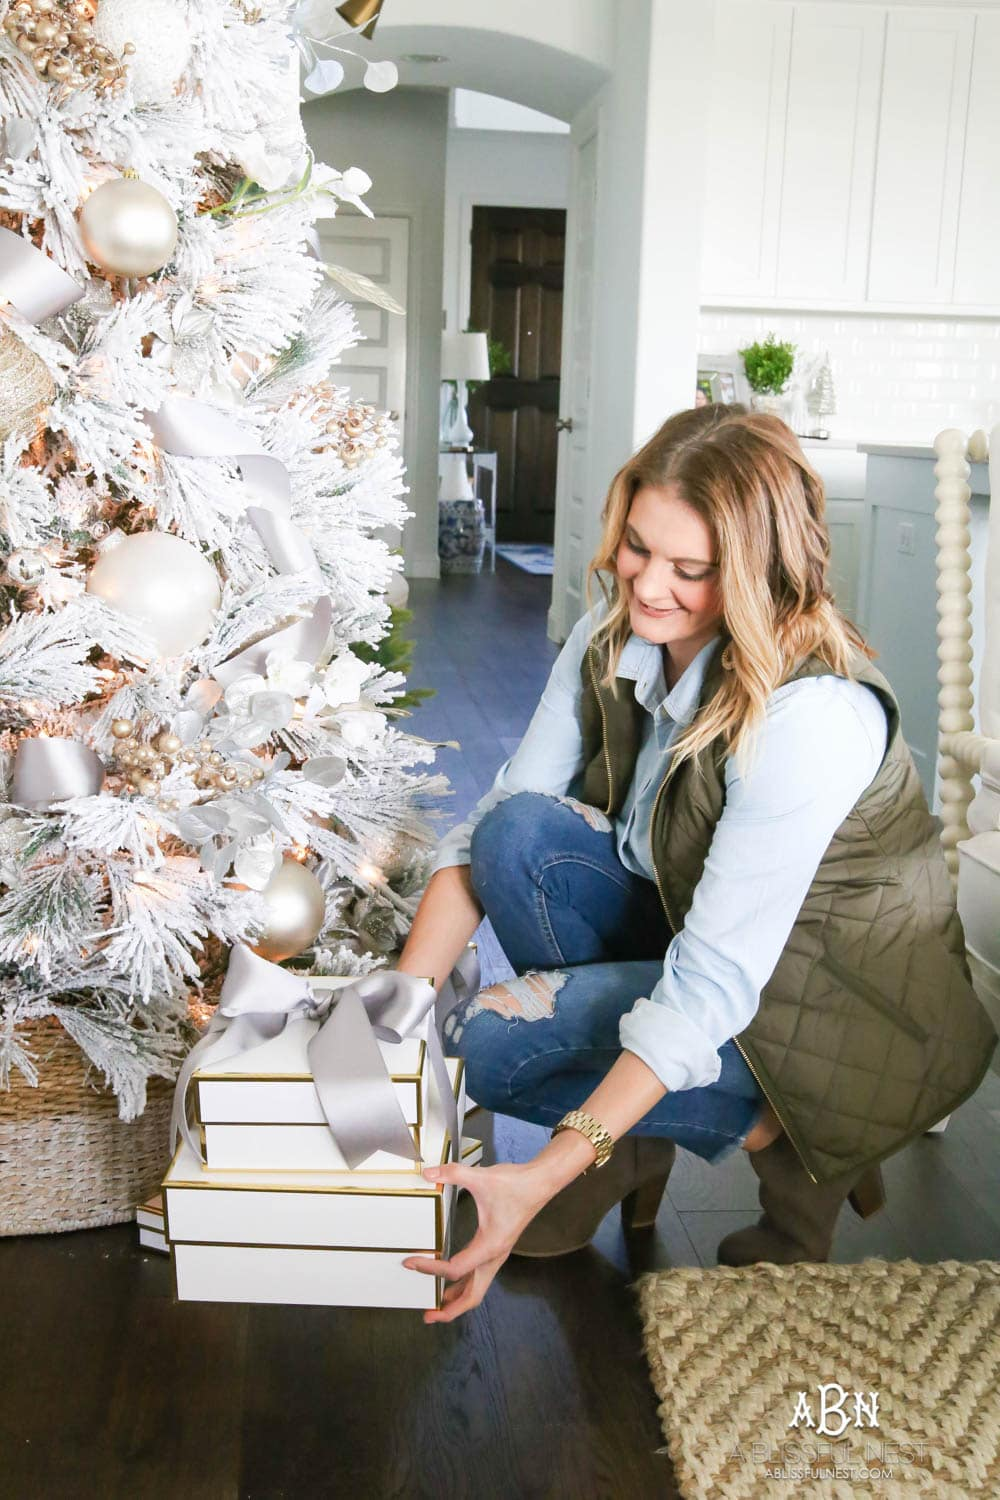 White boxes with gold trim make the perfect wrapping for gifts under this white flocked tree with silver and gold accents. Check out all the white, silver and gold Christmas decor in this holiday home tour on ABlissfulNest.com. #ABlissfulNest #Christmasdecor #Christmasdecorating #CoastalChristmasdecor #christmastree